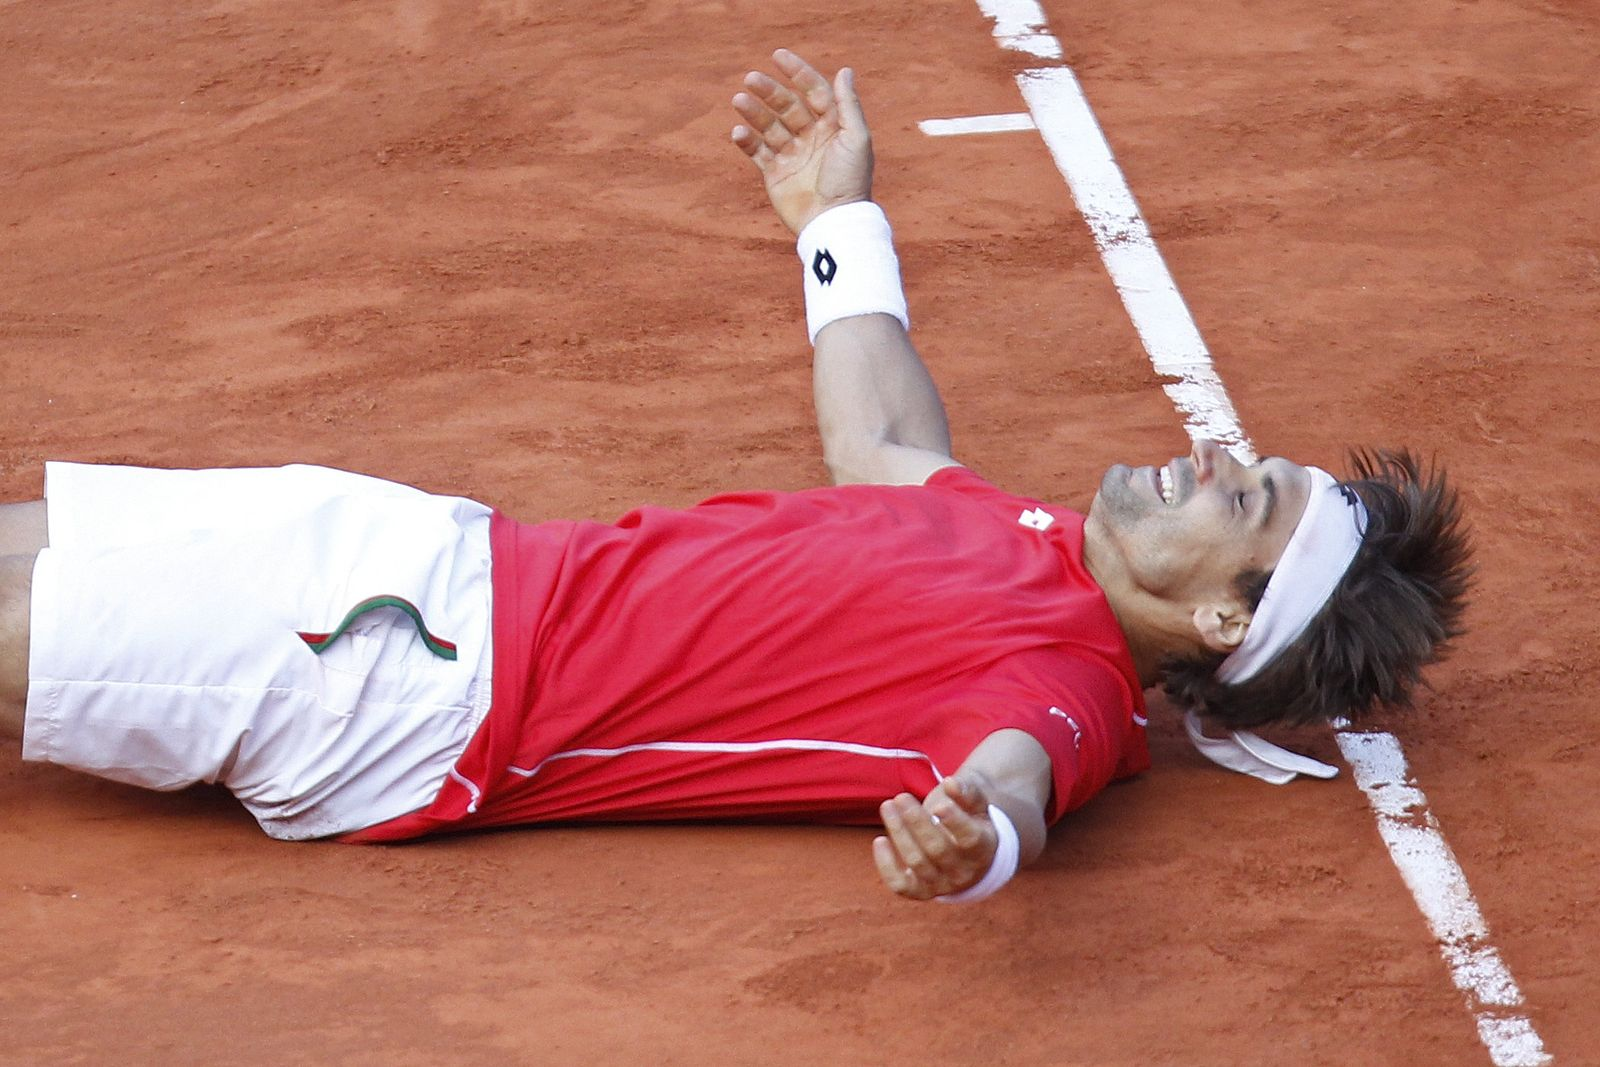 Spain Tennis Davis Cup Spain Germany